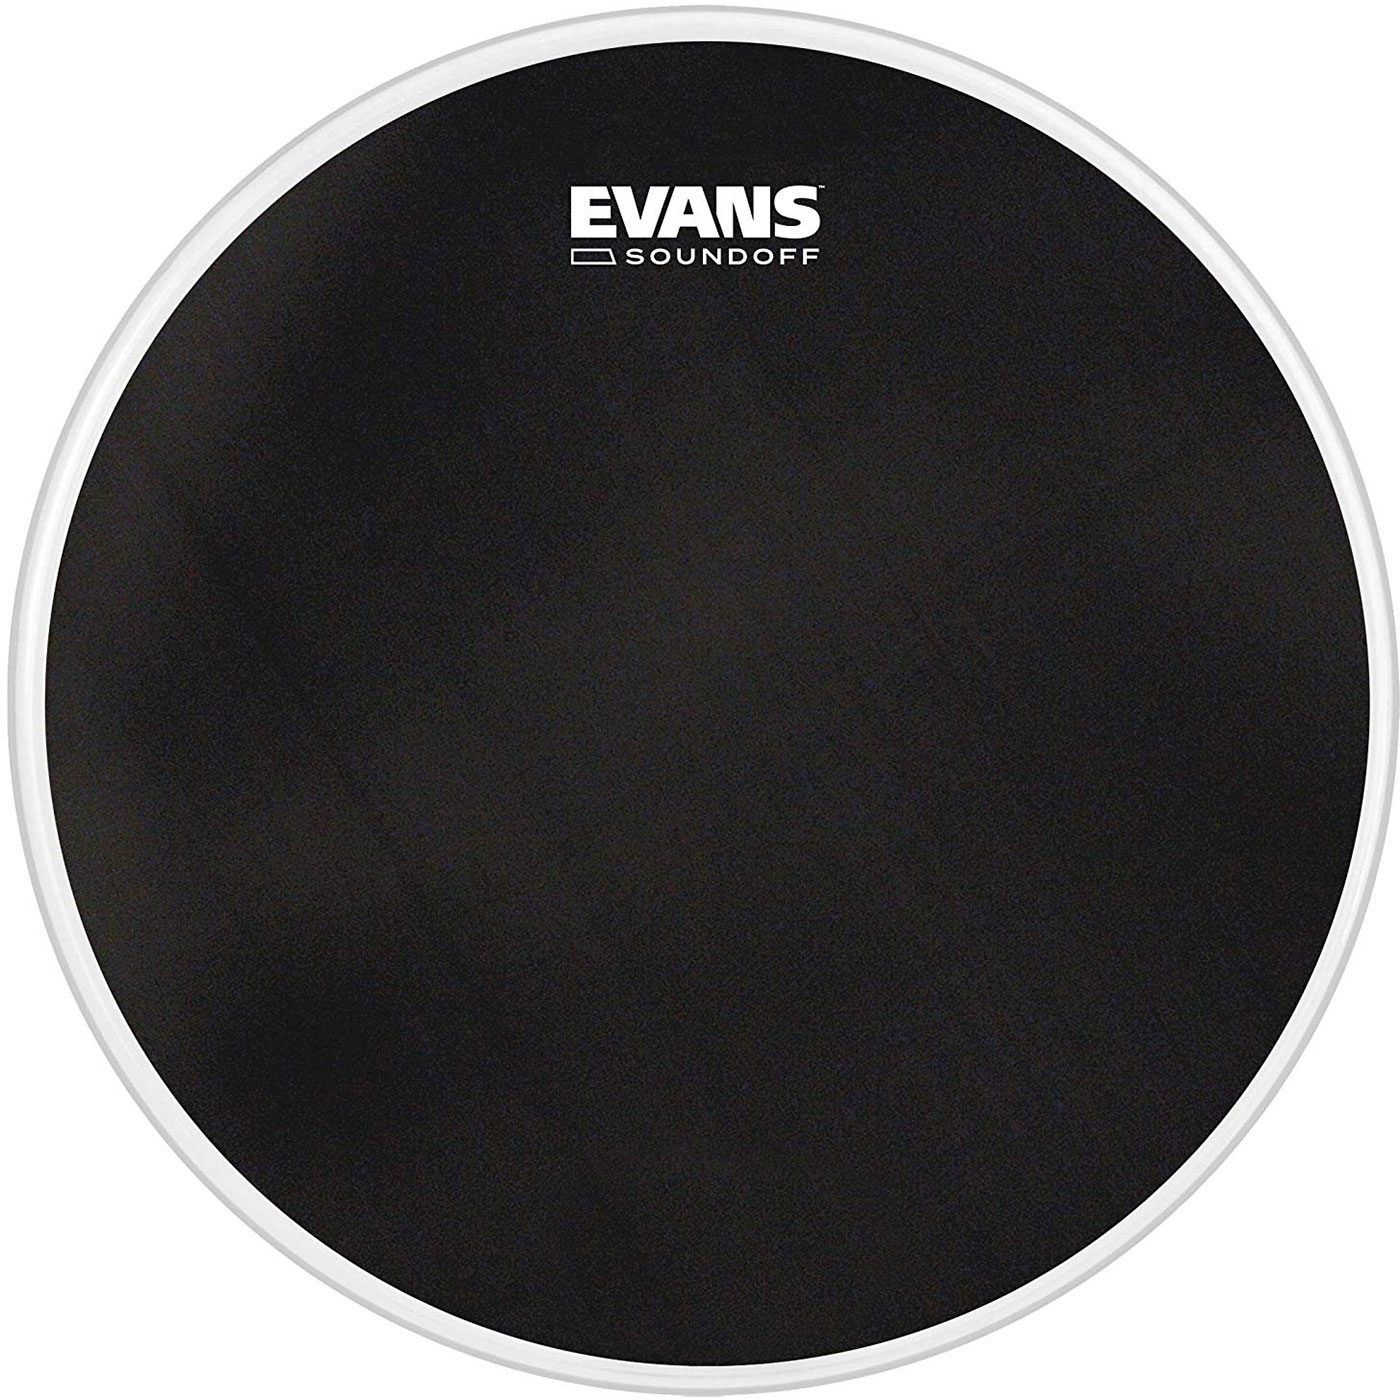 "Evans 18"" SoundOff Mesh Bass Drum Head"